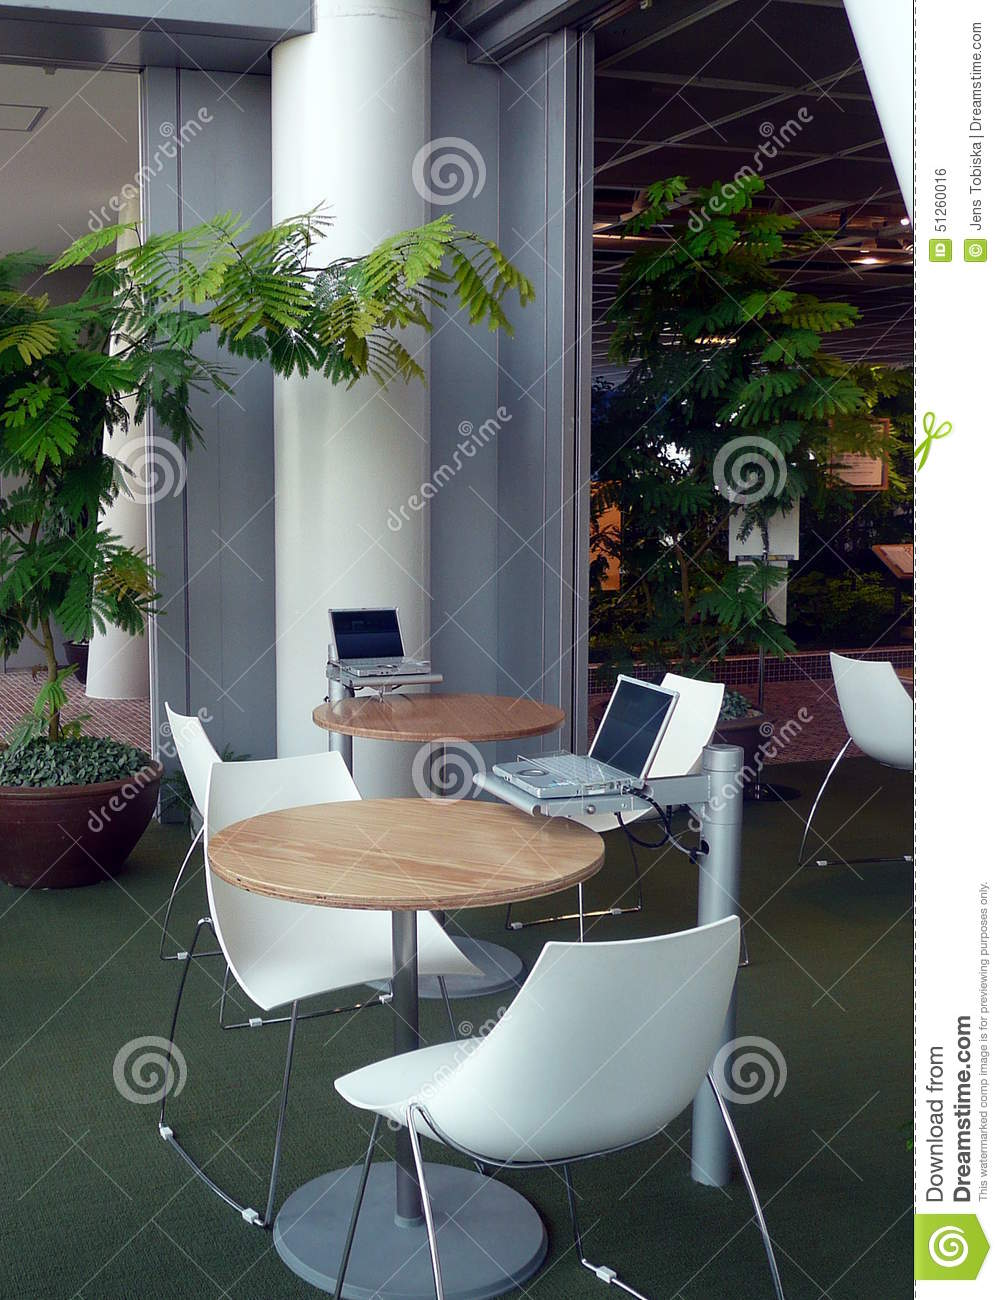 Classy Computer Tables To Go With Living Room Decor: Coffee Shop Computers Stock Photo